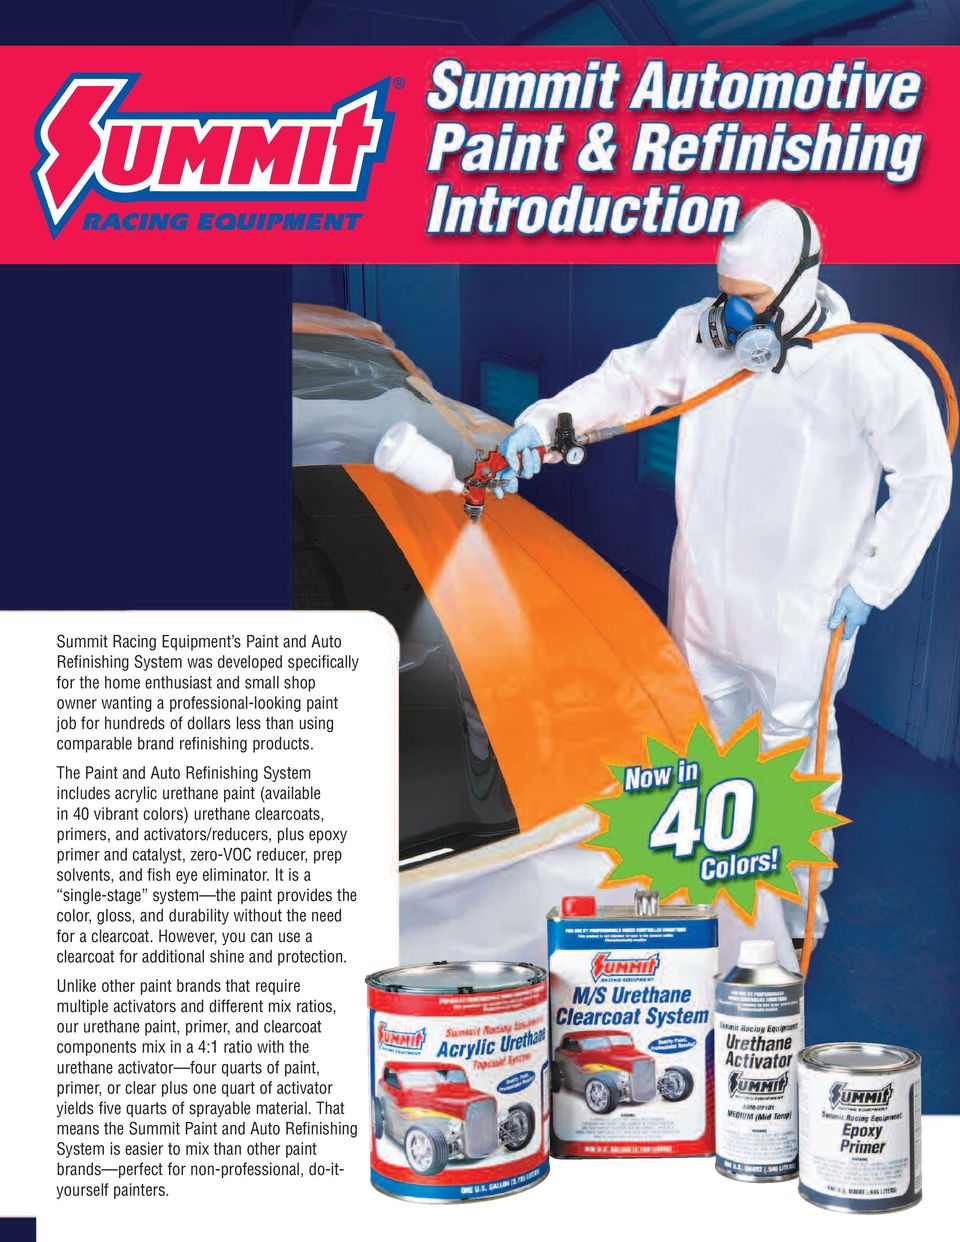 The Paint and Auto Refinishing System includes acrylic urethane paint (available in 40 vibrant colors) urethane clearcoats, primers, and activators/reducers, plus epoxy primer and catalyst, zero-voc